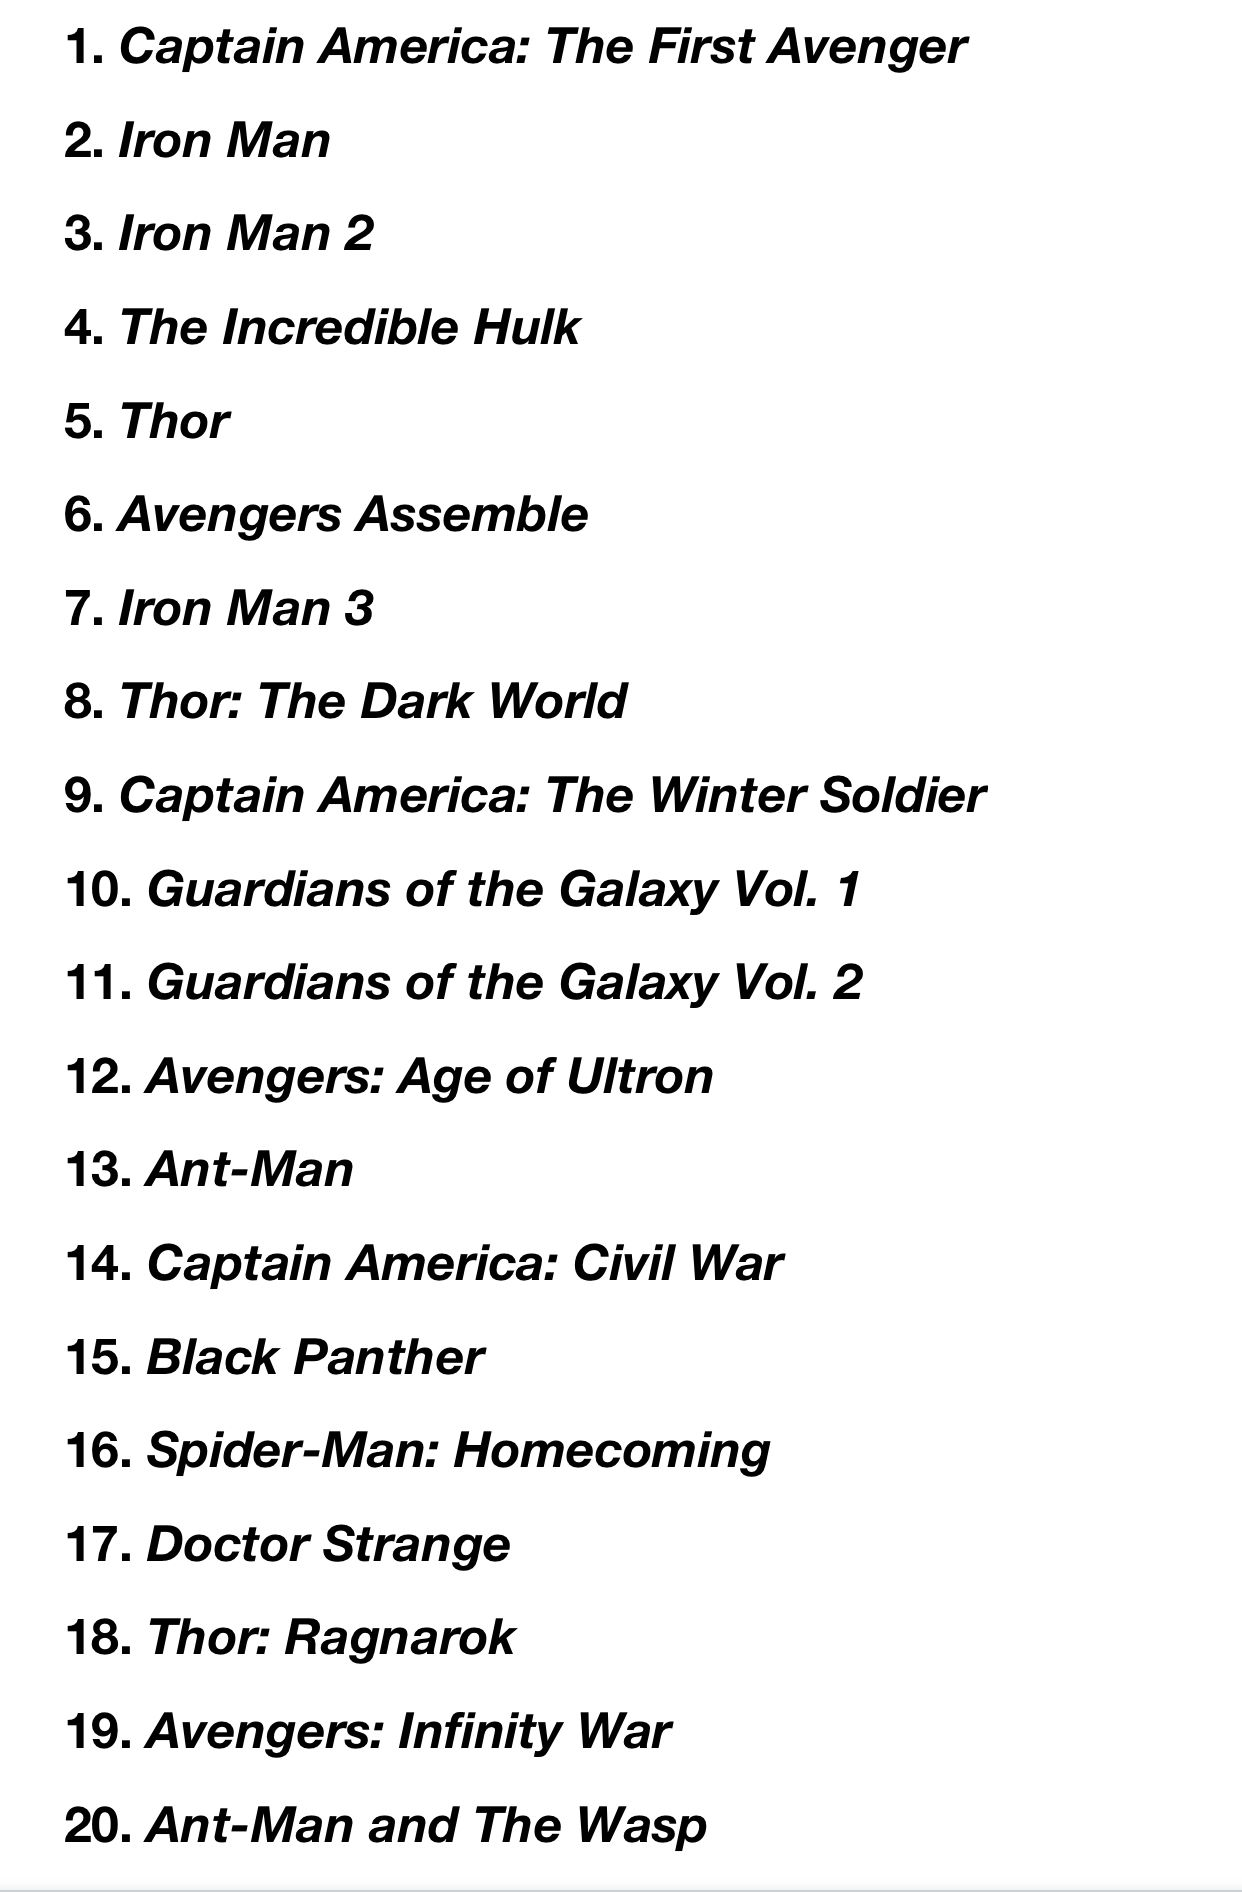 Chronological Order Of Marvel Movies As Of December 2018 Avengers Movies In Order Marvel Movies In Order Marvel Avengers Movies